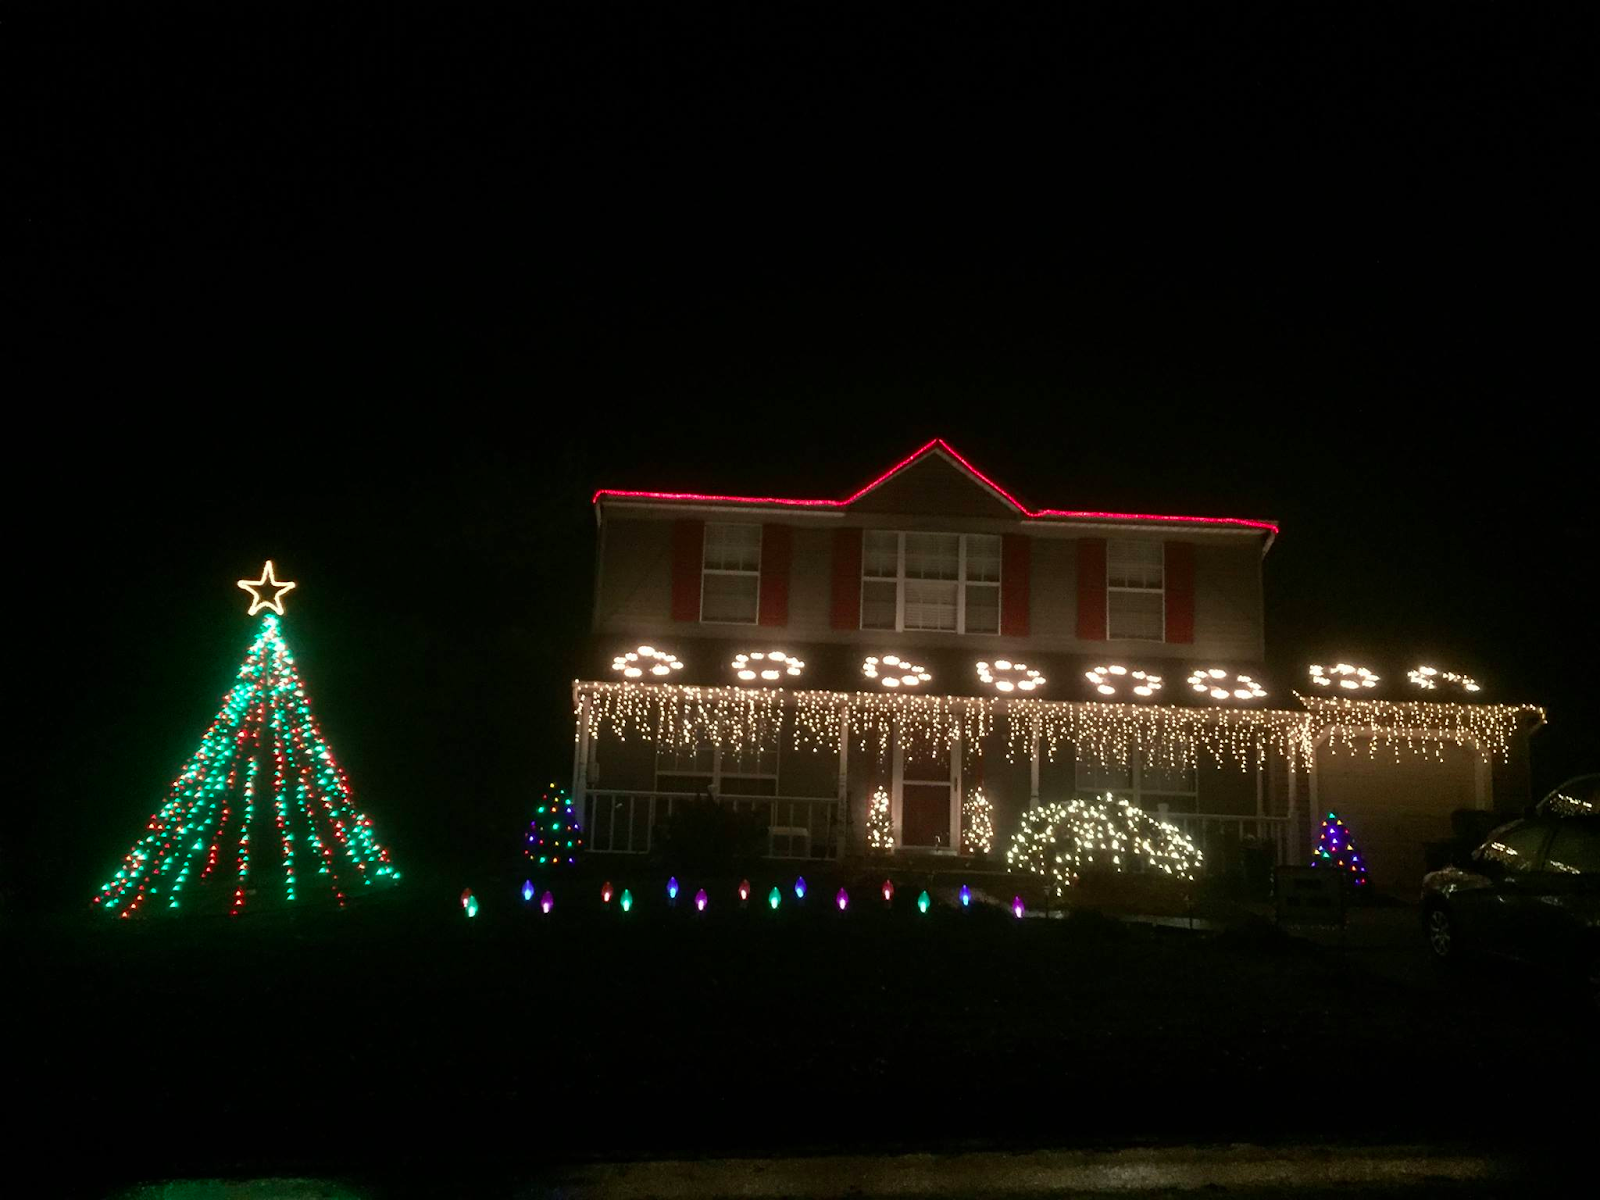 Why do we decorate with christmas lights - This Is A New Light Show In Its First Year And We Already Love What They Ve Come Up With We Can T Wait To See What They Do In Future Years